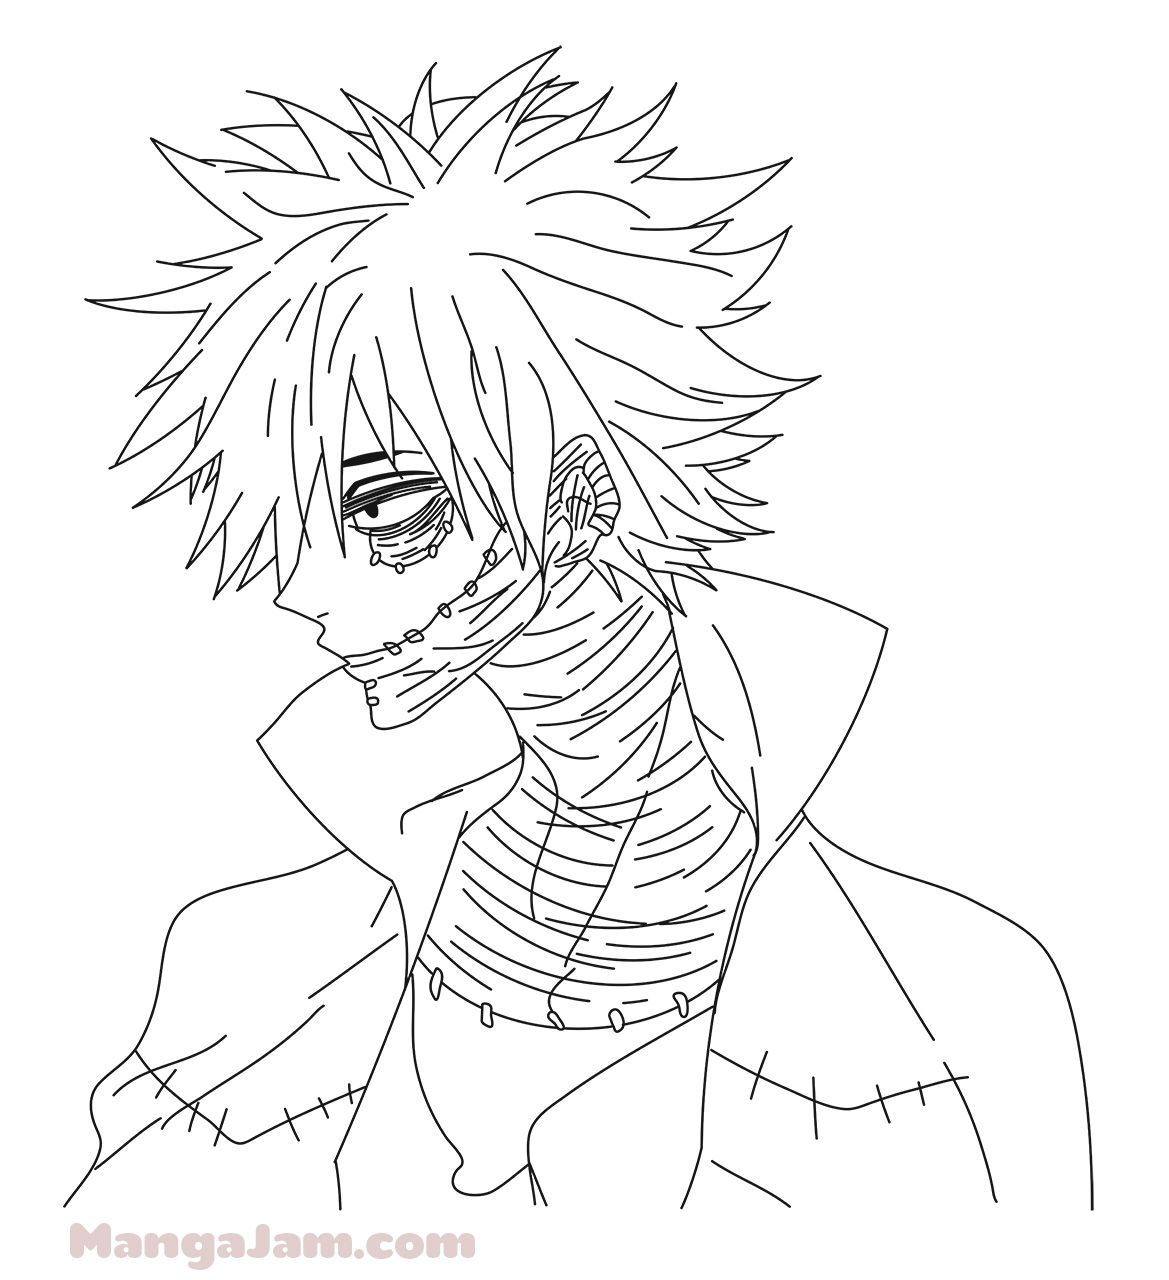 How To Draw Dabi From Boku No Hero Academia Mangajam Com Manga Coloring Book Best Friend Drawings Drawings